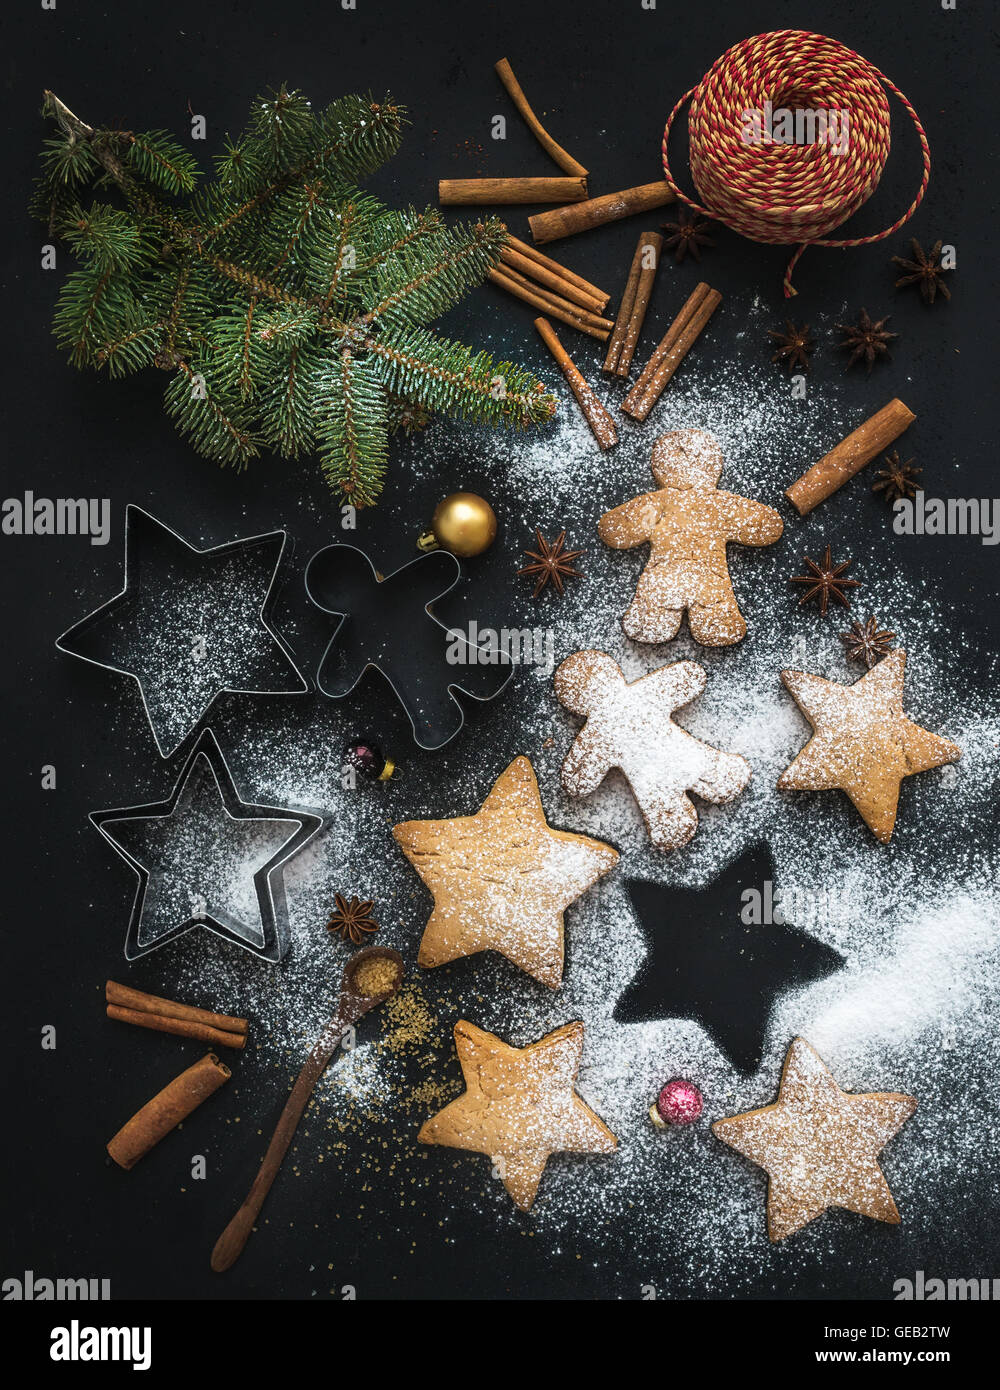 Cooked Christmas holiday traditional gingerbread cookies with sugar powder, anise and cinnamon sticks on black background - Stock Image